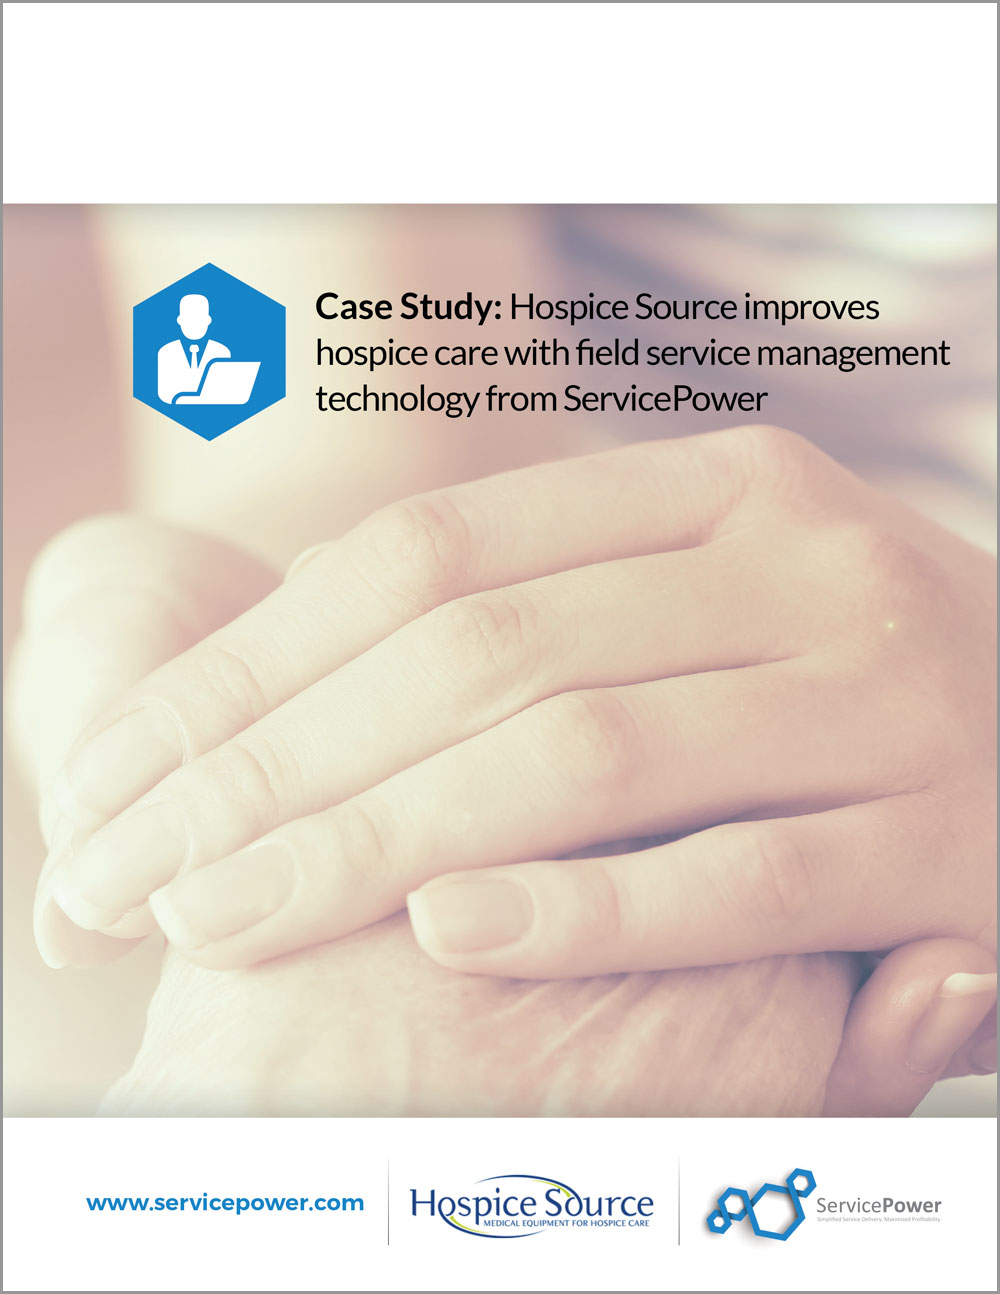 Case Study: Hospice Source